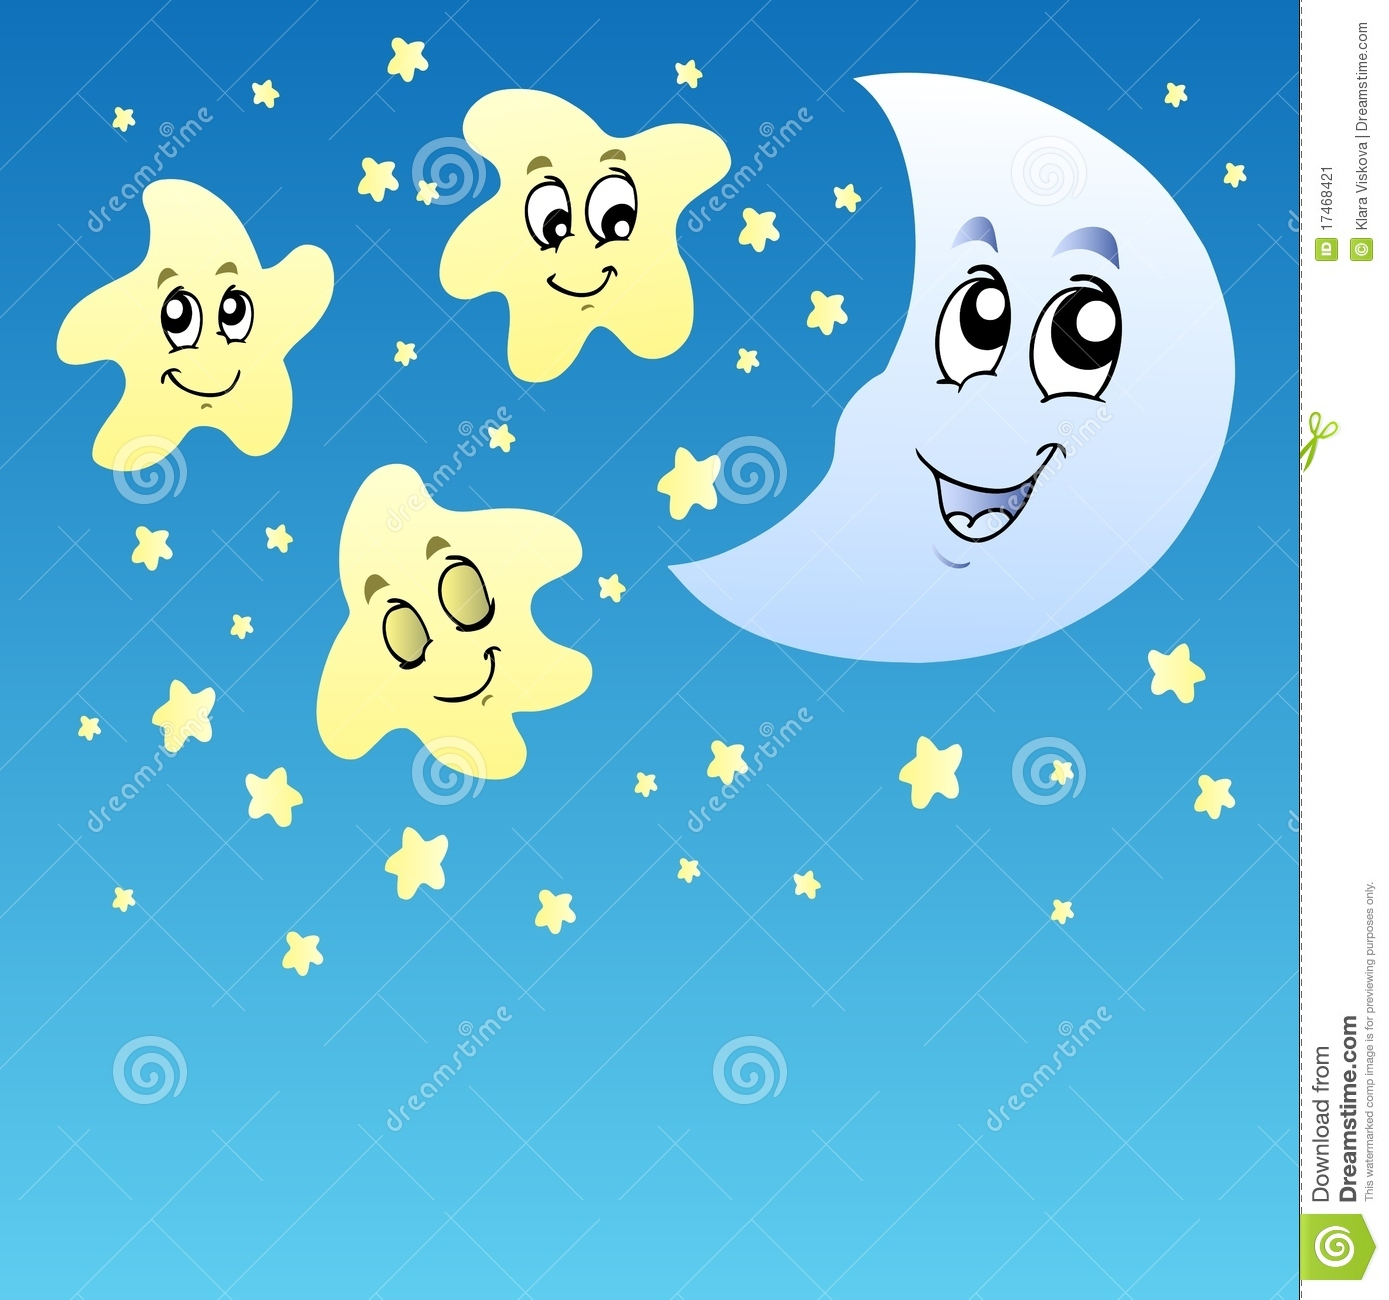 Night Sky With Cute Stars And Moon Stock Image - Image: 17468421